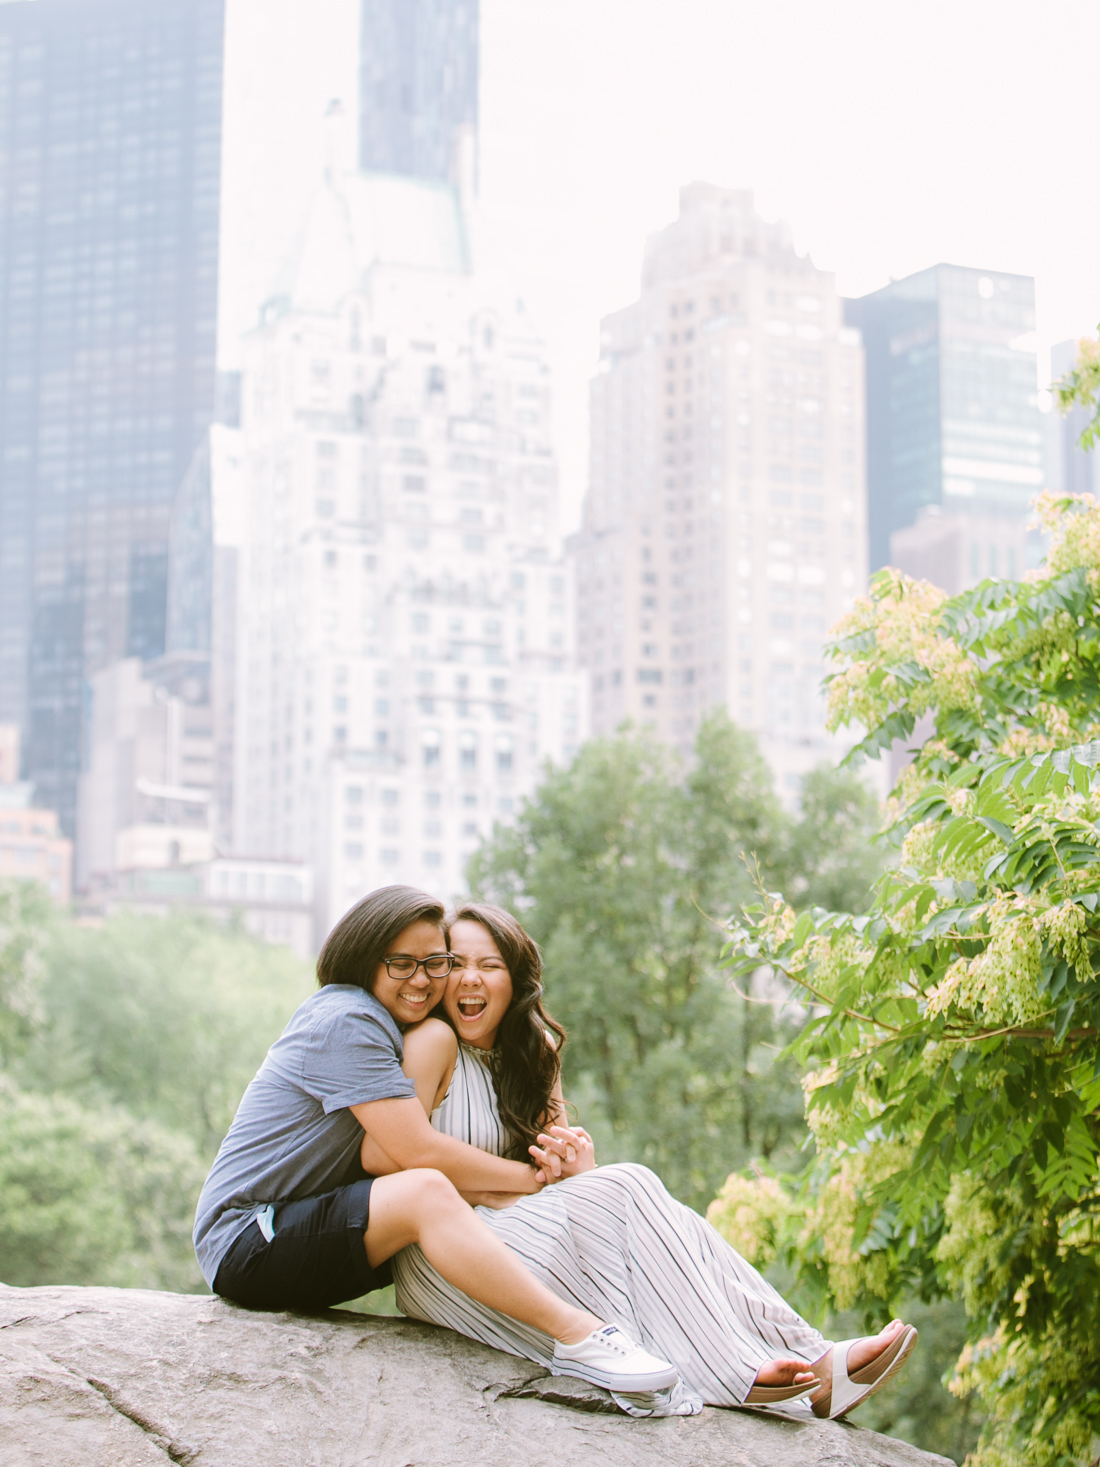 NYC-engagement-photography-by-Tanya-Isaeva-21.jpg